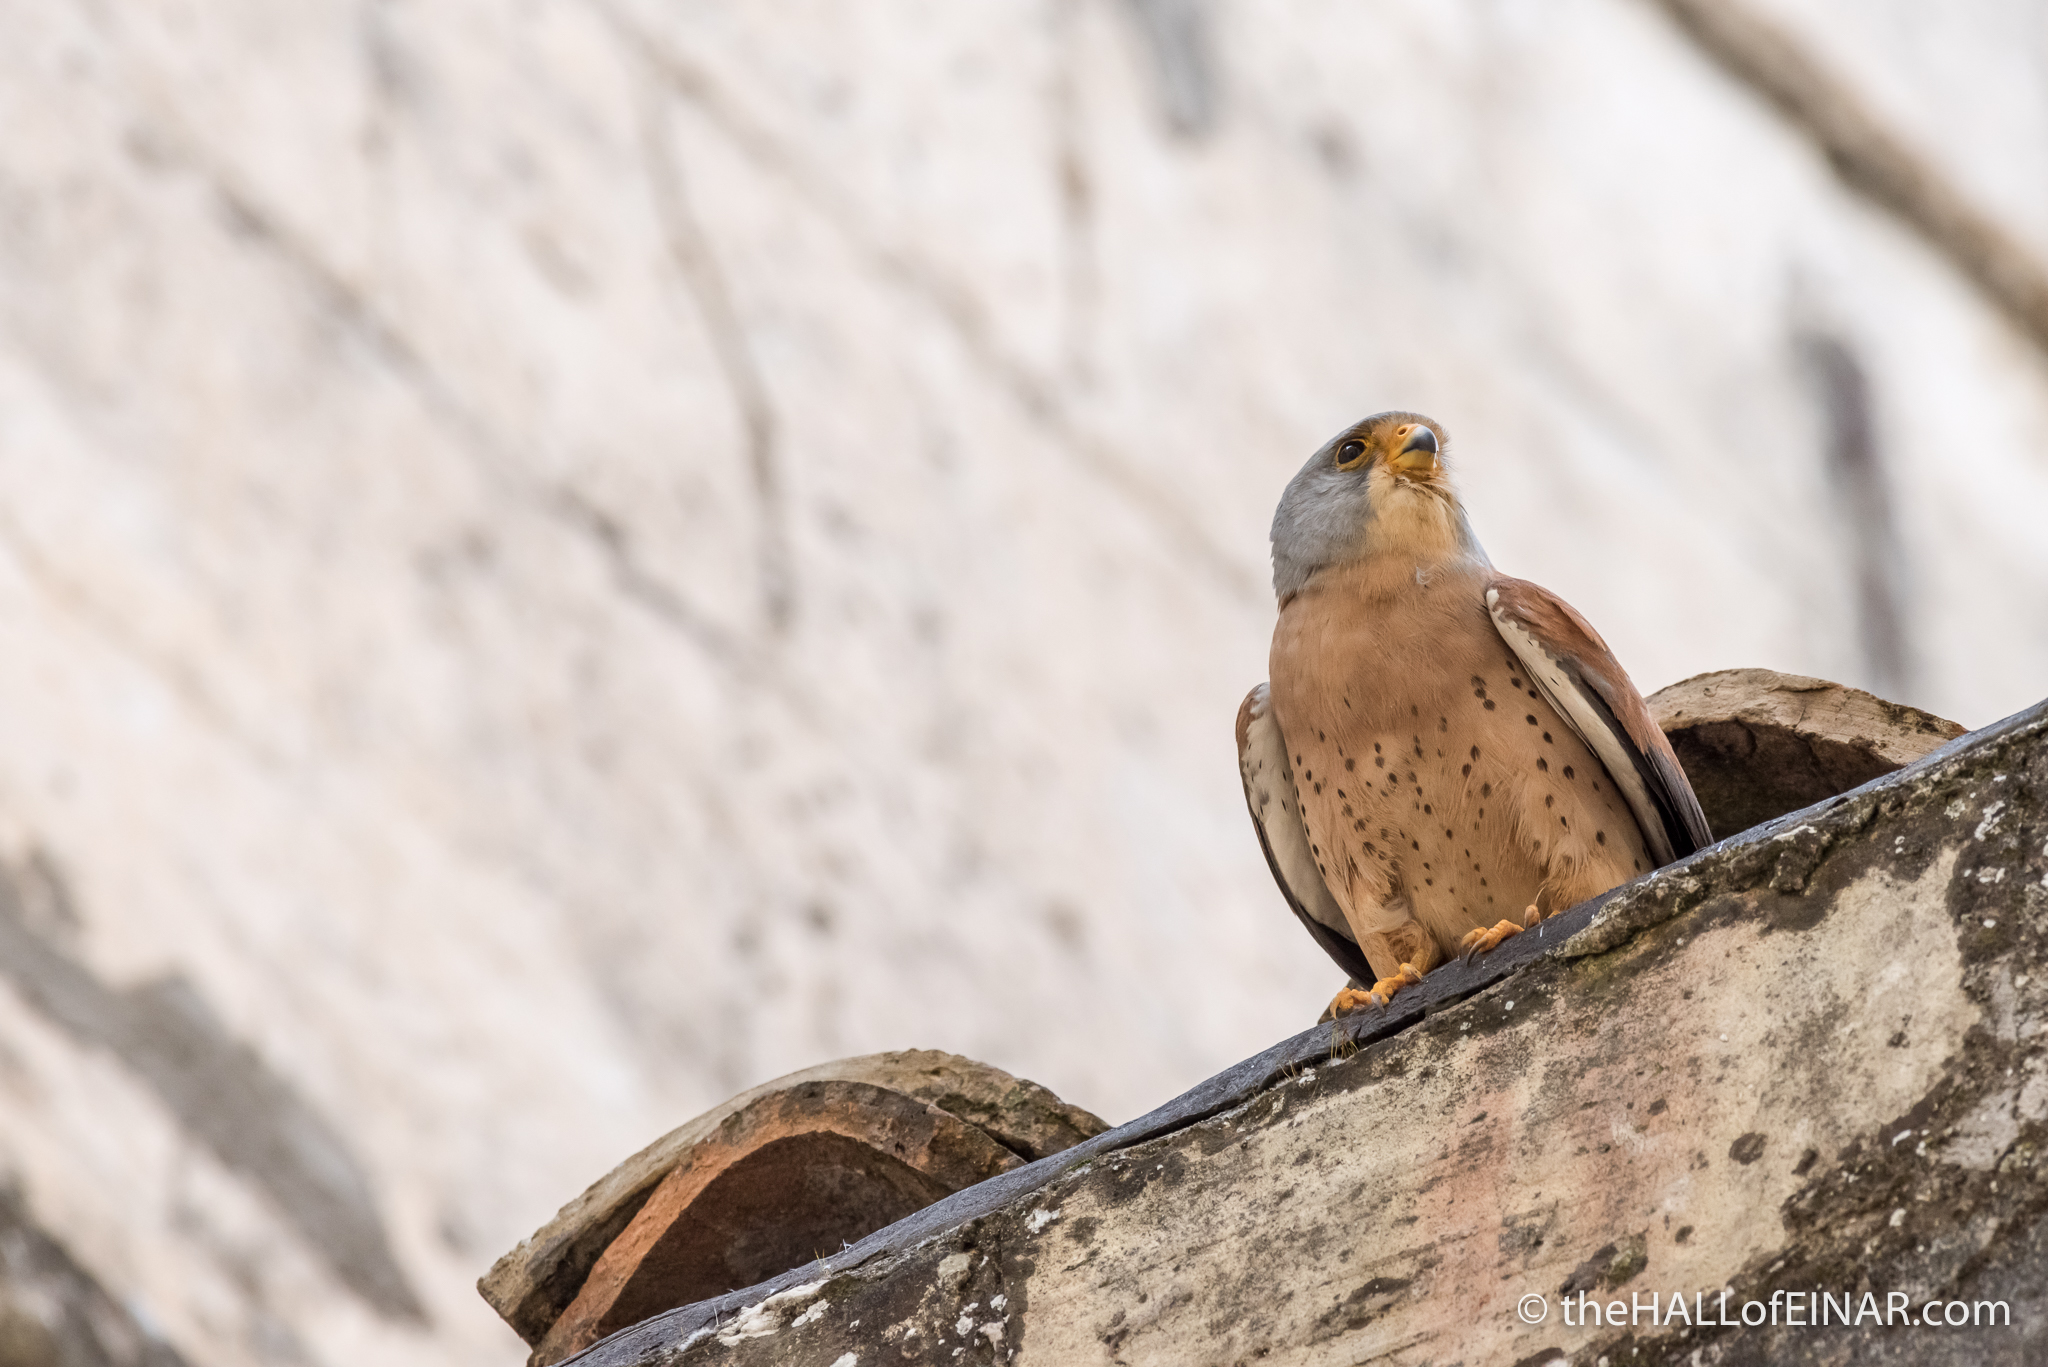 The Lesser Kestrels of Matera - The Hall of Einar - photograph (c) David Bailey (not the)